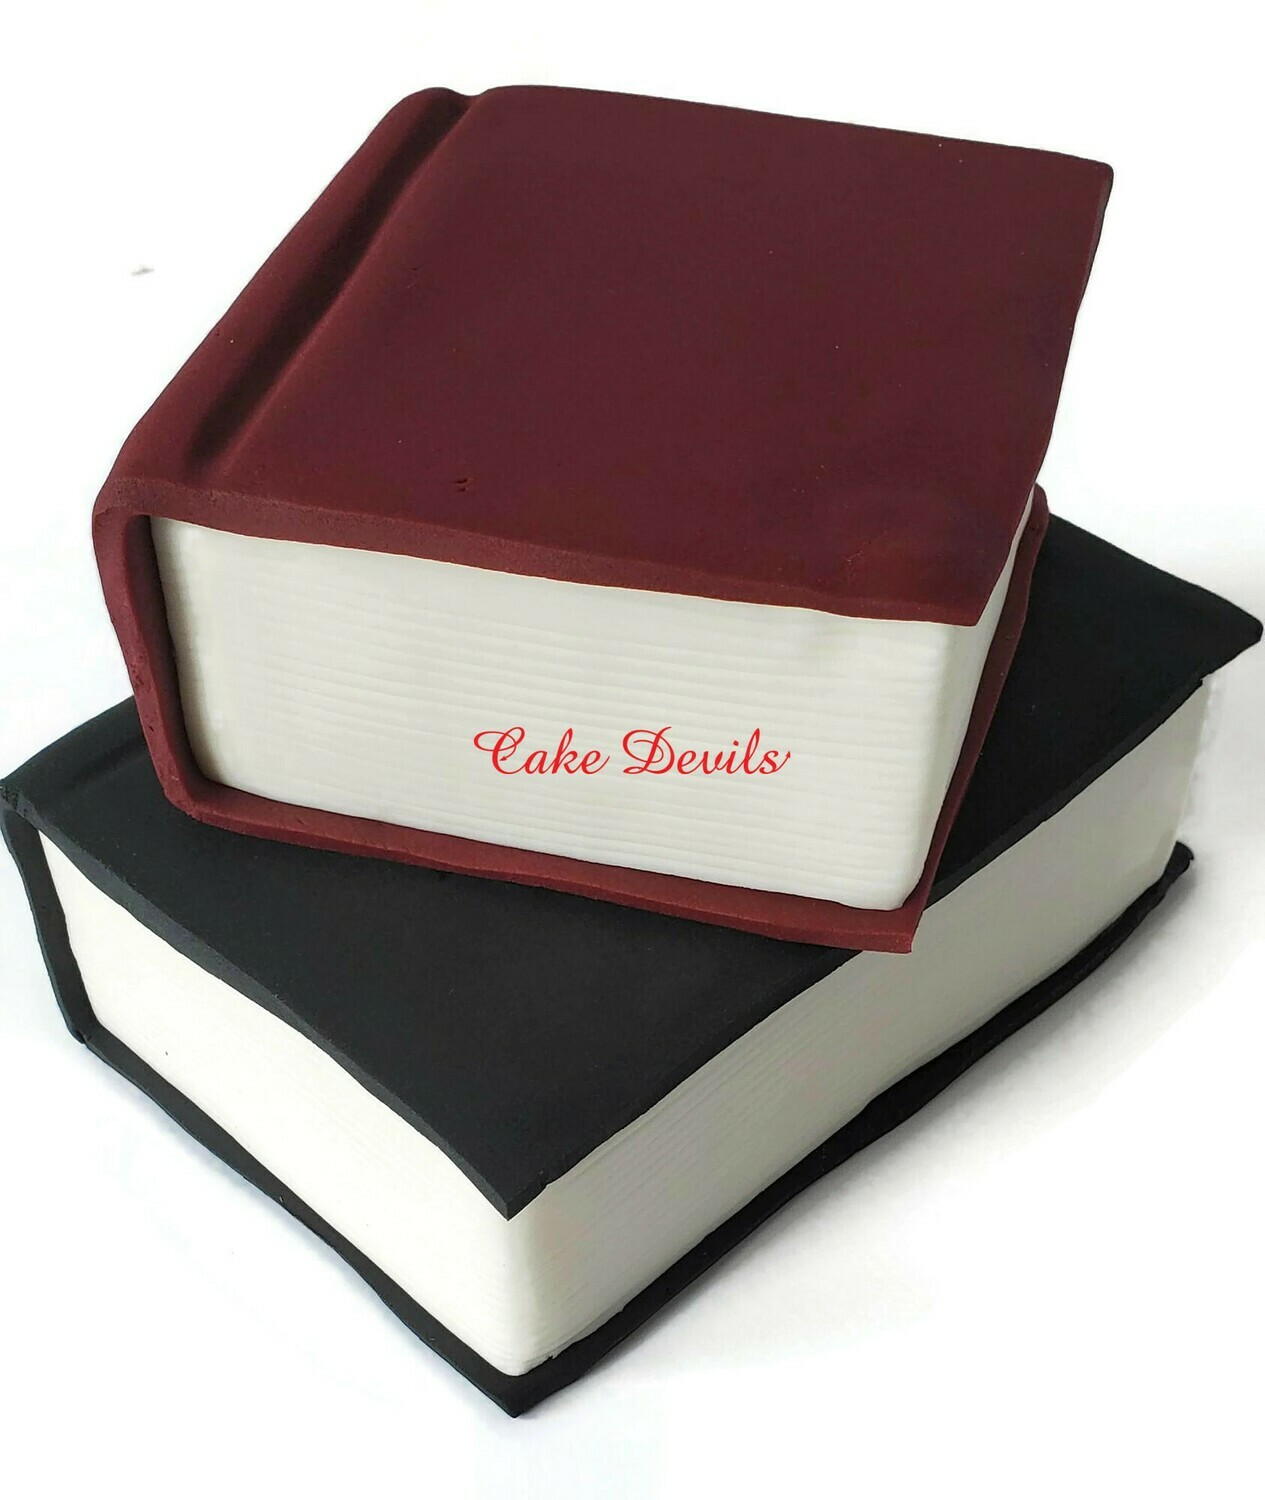 Fondant Stacked Books LARGE Cake Toppers, Perfect for Graduation Cake Or an Nursery Rhyme theme Baby Shower